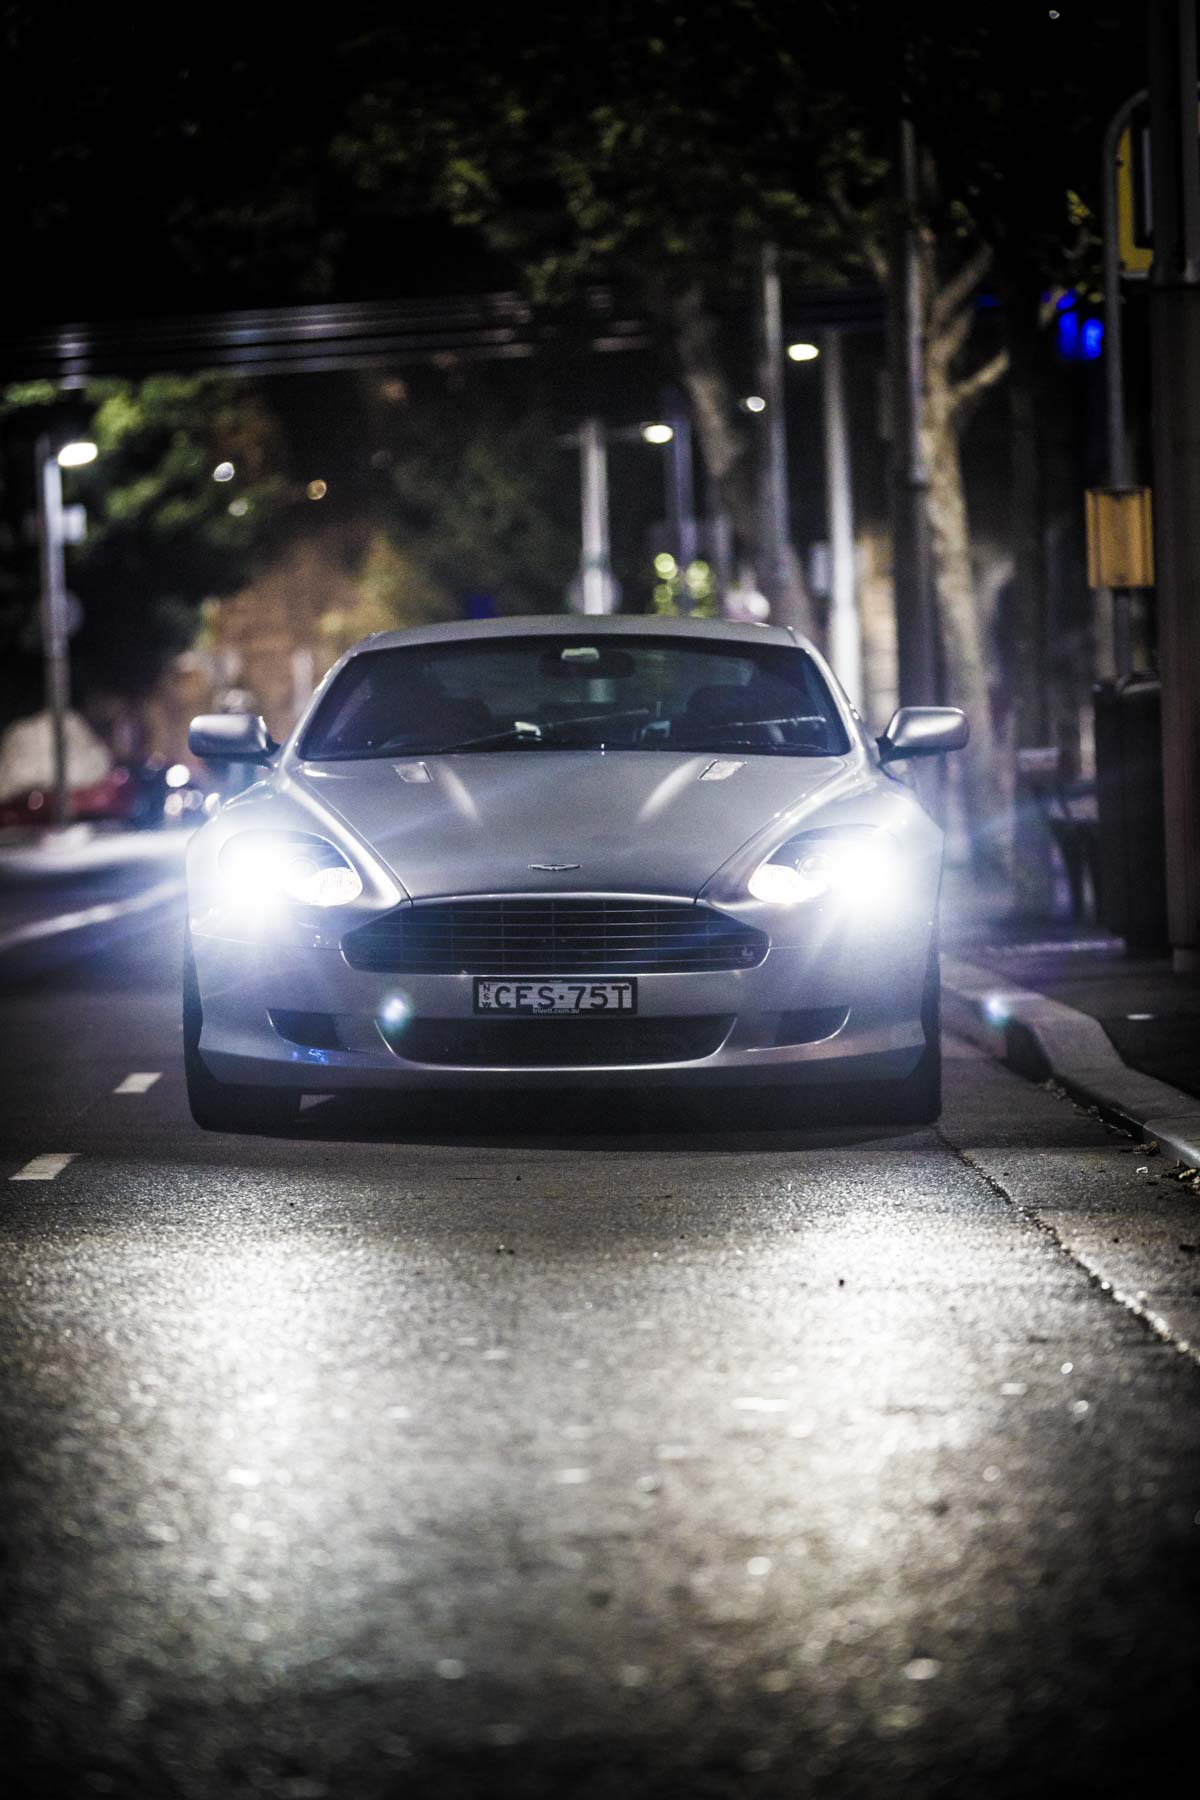 Aston Martin DB9 - London Performance Car Photography